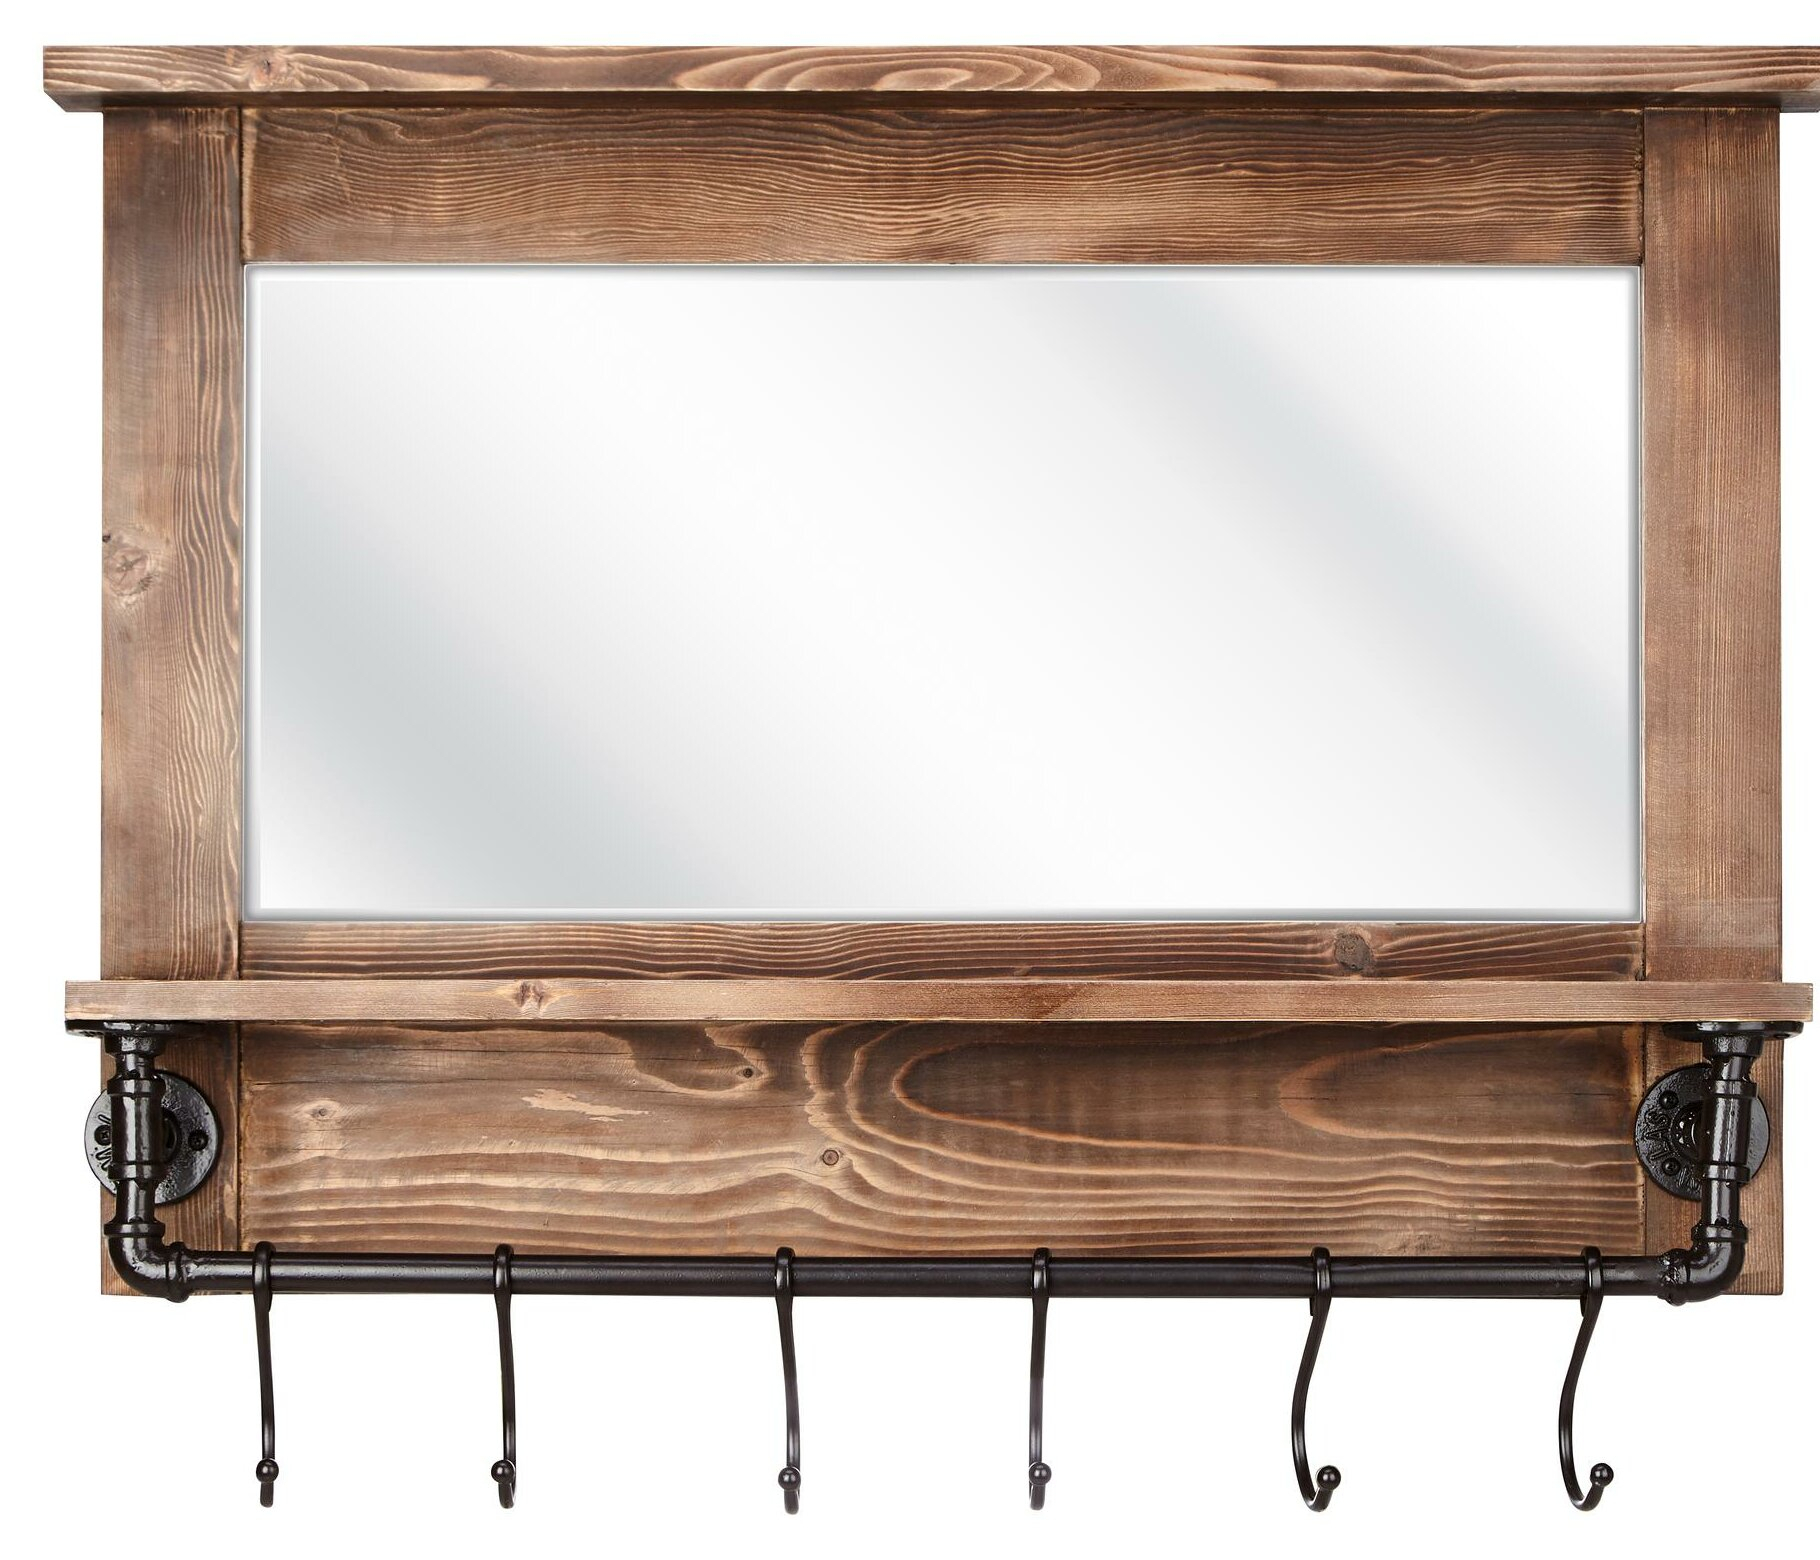 Gracie Oaks Carrico Rustic Beveled With Shelves Wall Mirror For Hallas Wall Organizer Mirrors (Image 8 of 20)